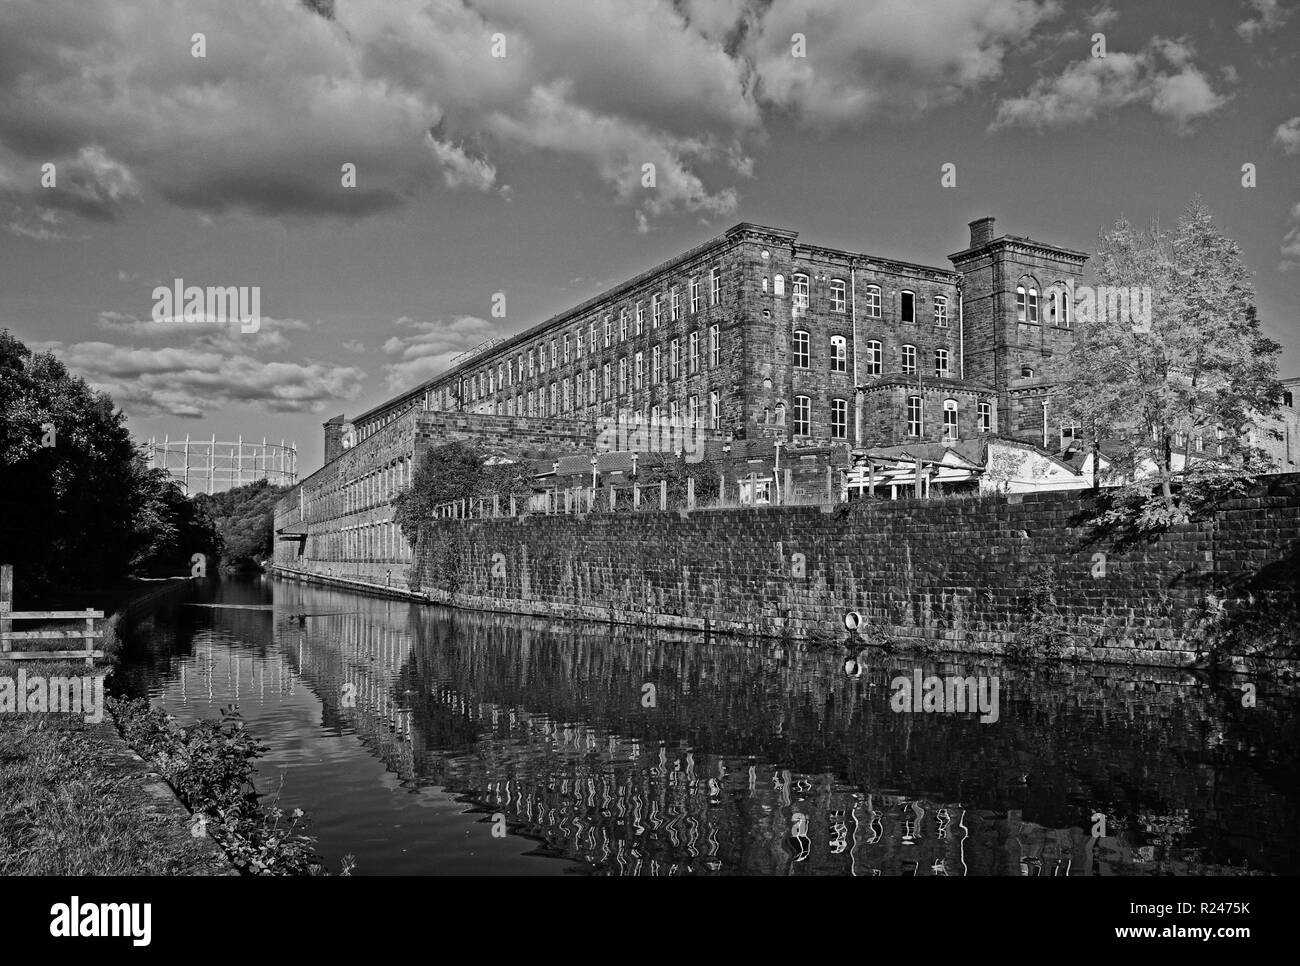 Tunstill Mill, one of tjhe Brierfield Mills, in traditional monochrome - Stock Image